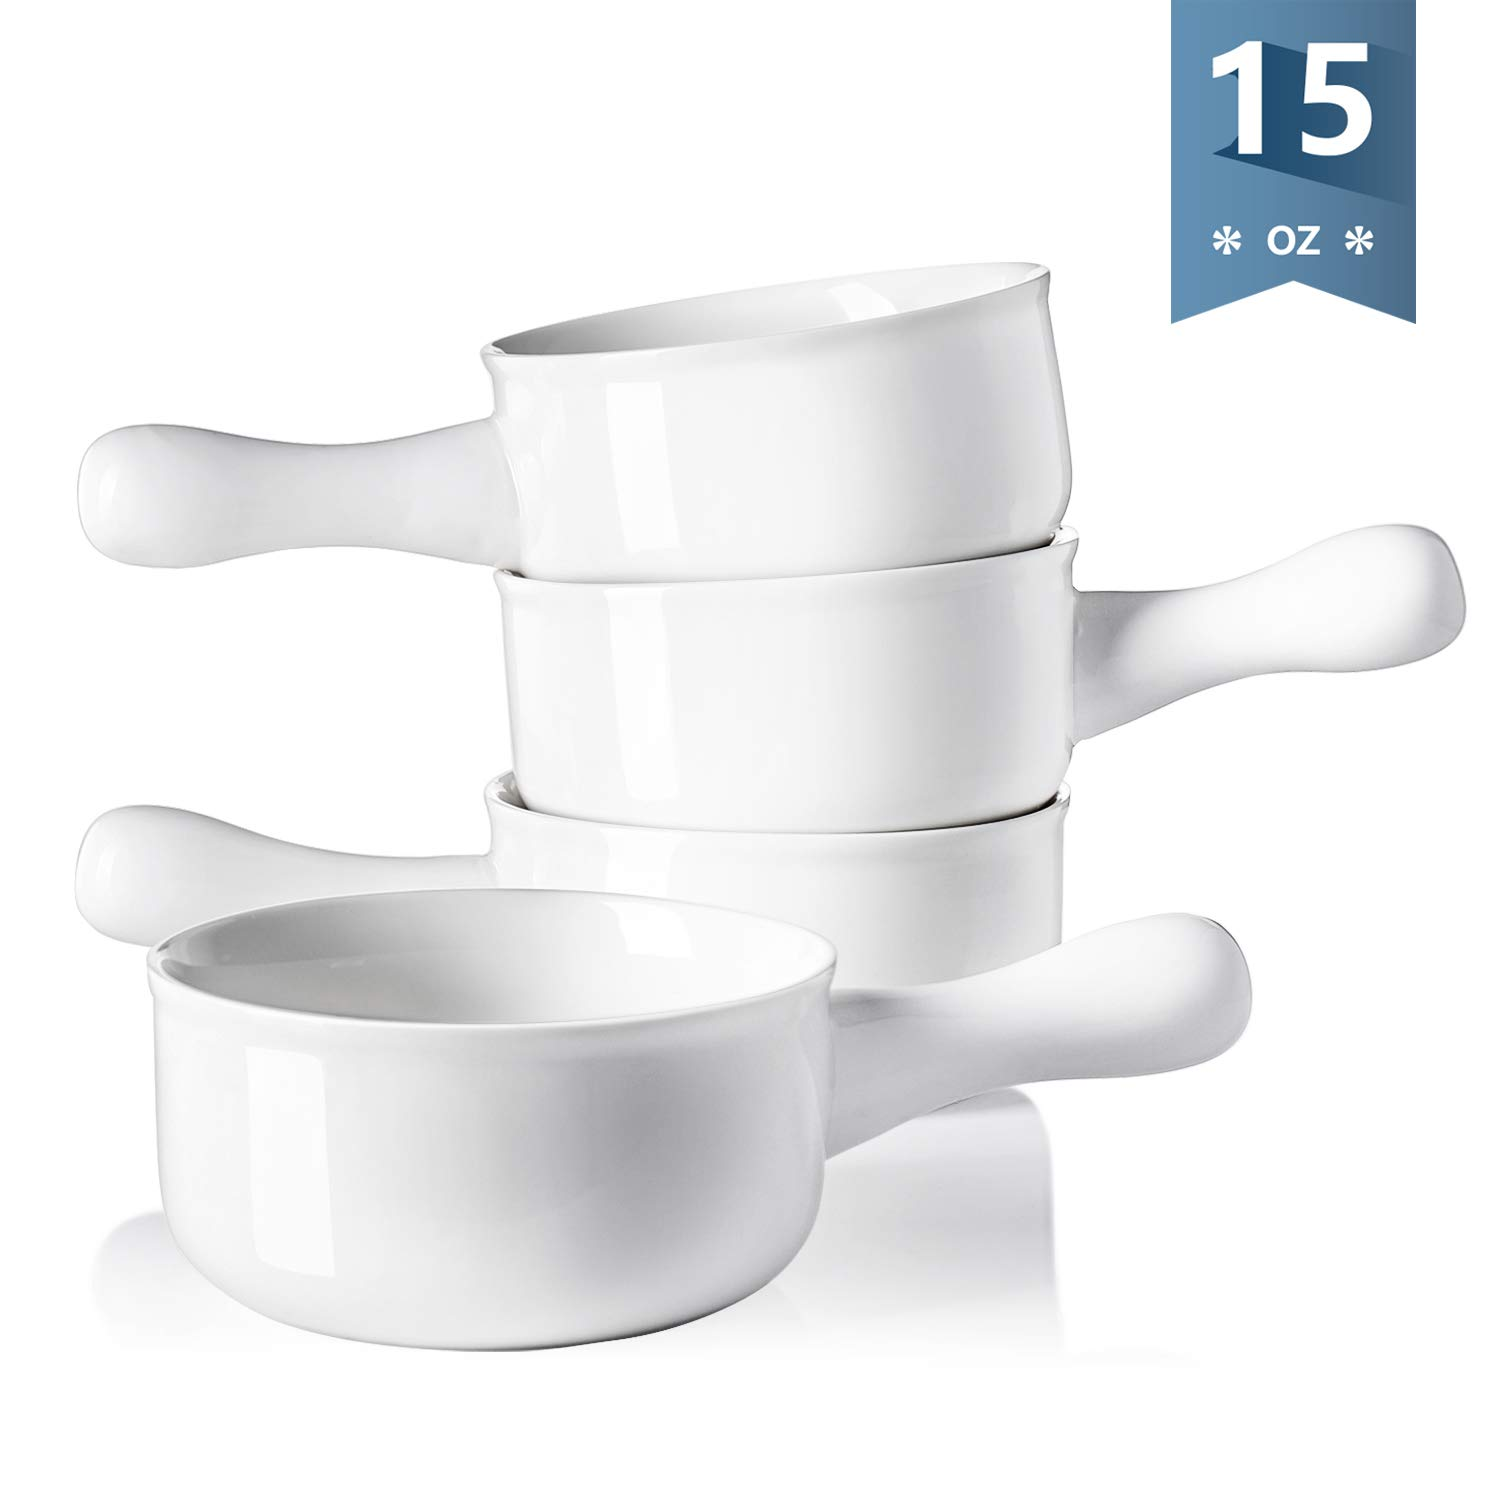 Sweese 1314 Porcelain Onion Soup Bowls with Handles - 15 Ounce for Soup, Cereal, Stew, Chill, Set of 4, White